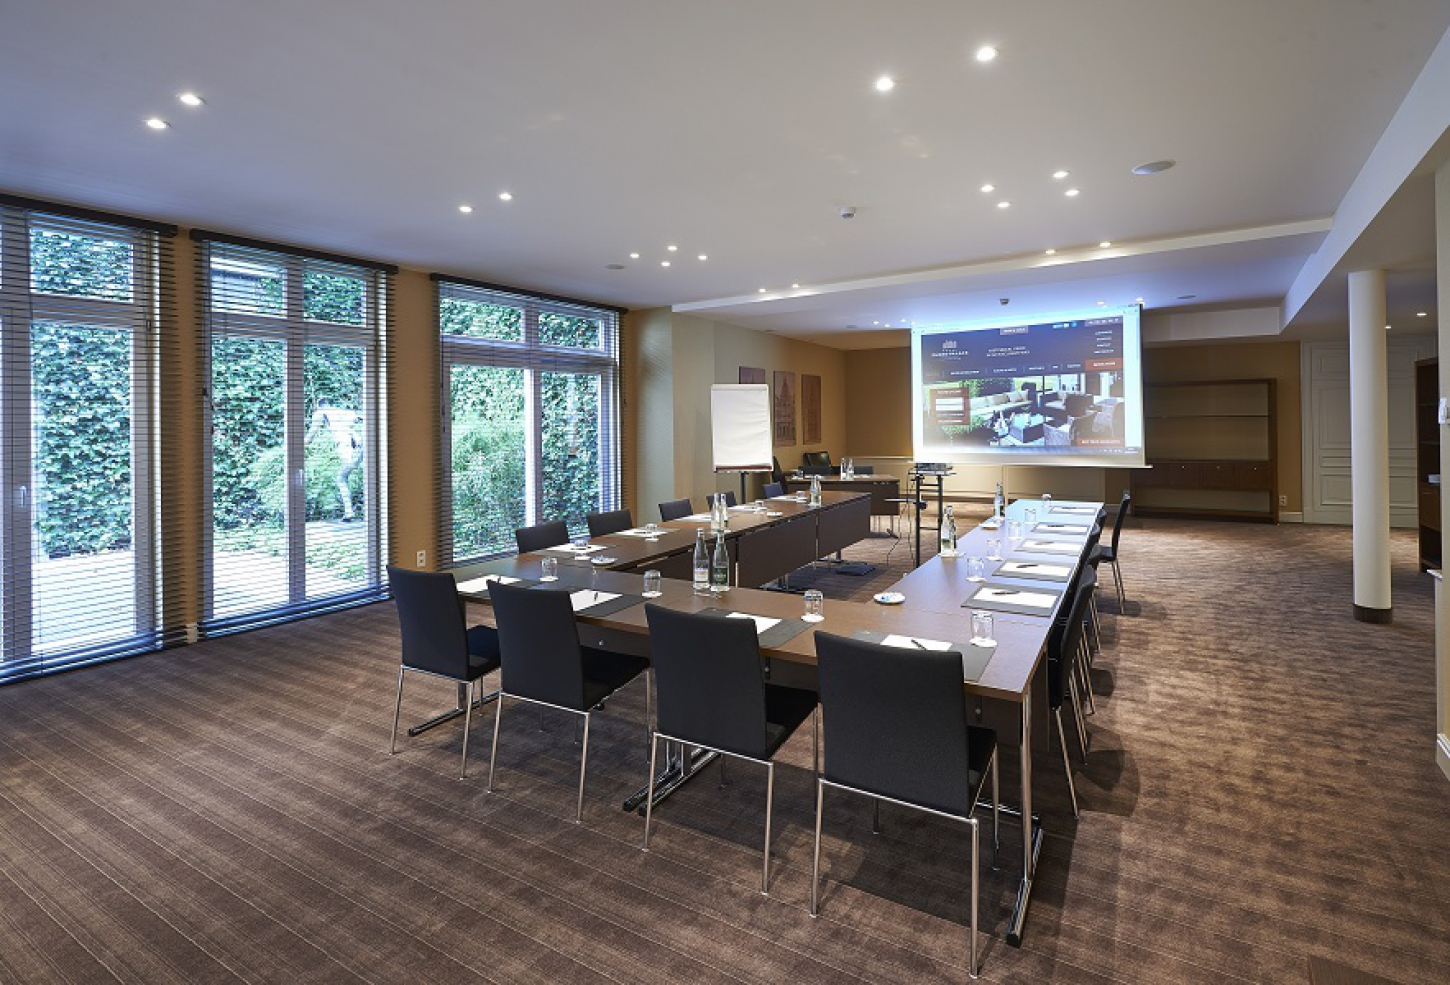 Meeting rooms with a capacity of up to 140 persons